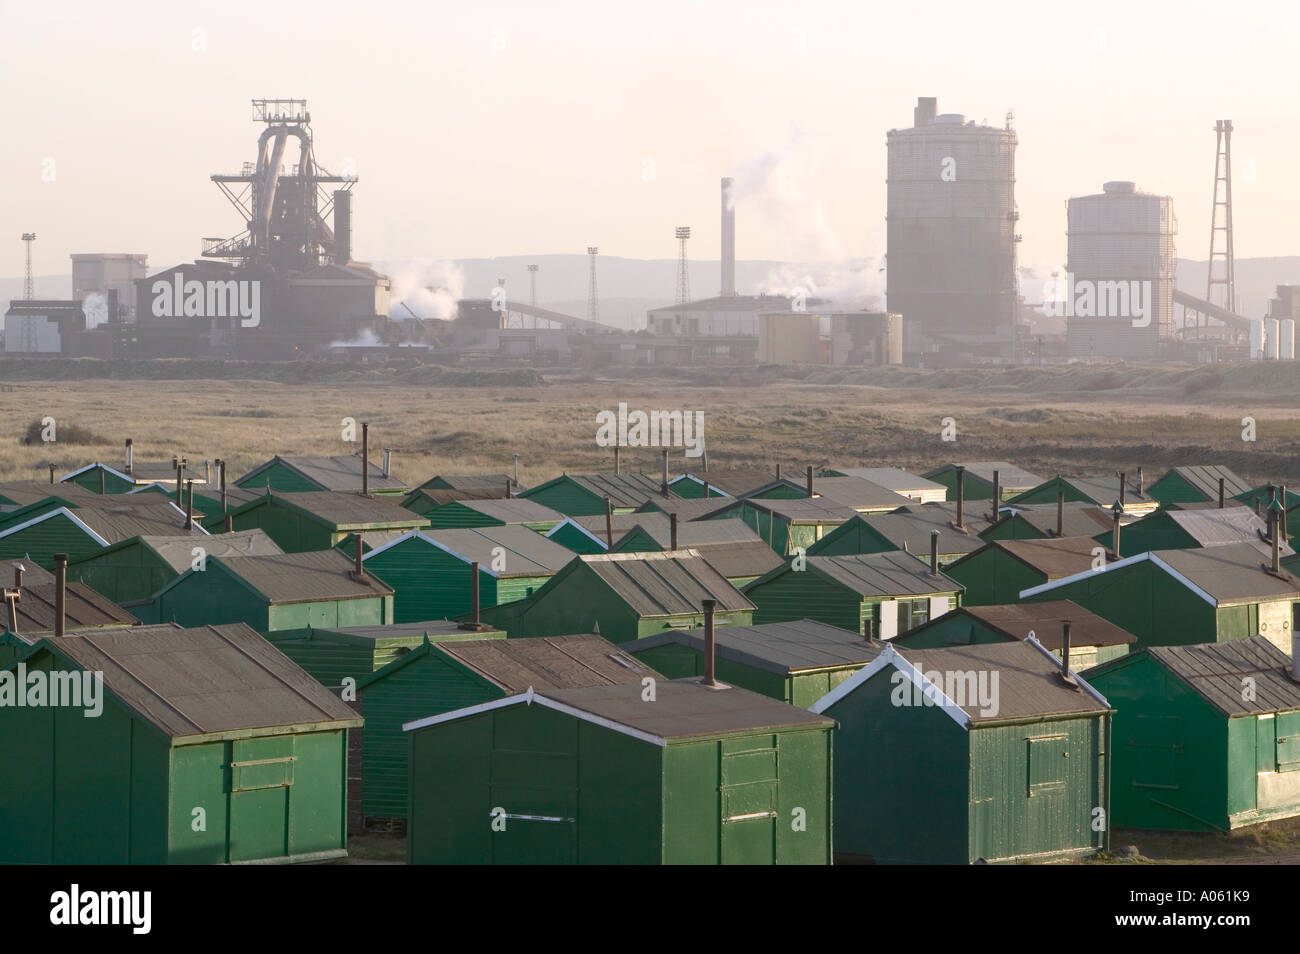 Fishermens huts at South Gare, Redcar, Teeside, with the Corus Steelworks in the back ground, England - Stock Image